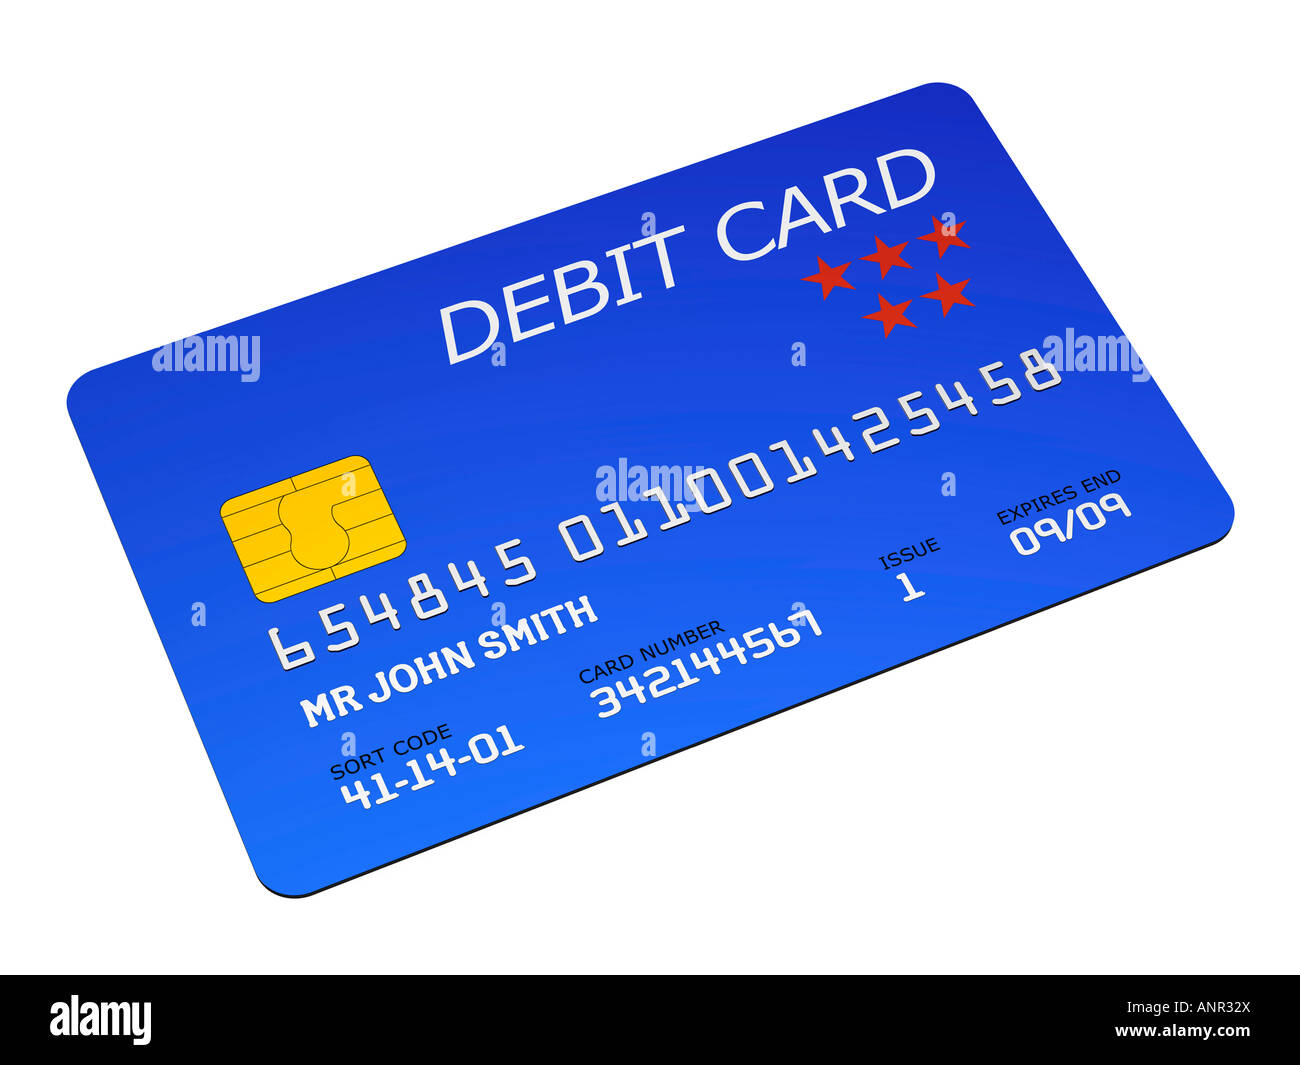 how to get pin number for debit card